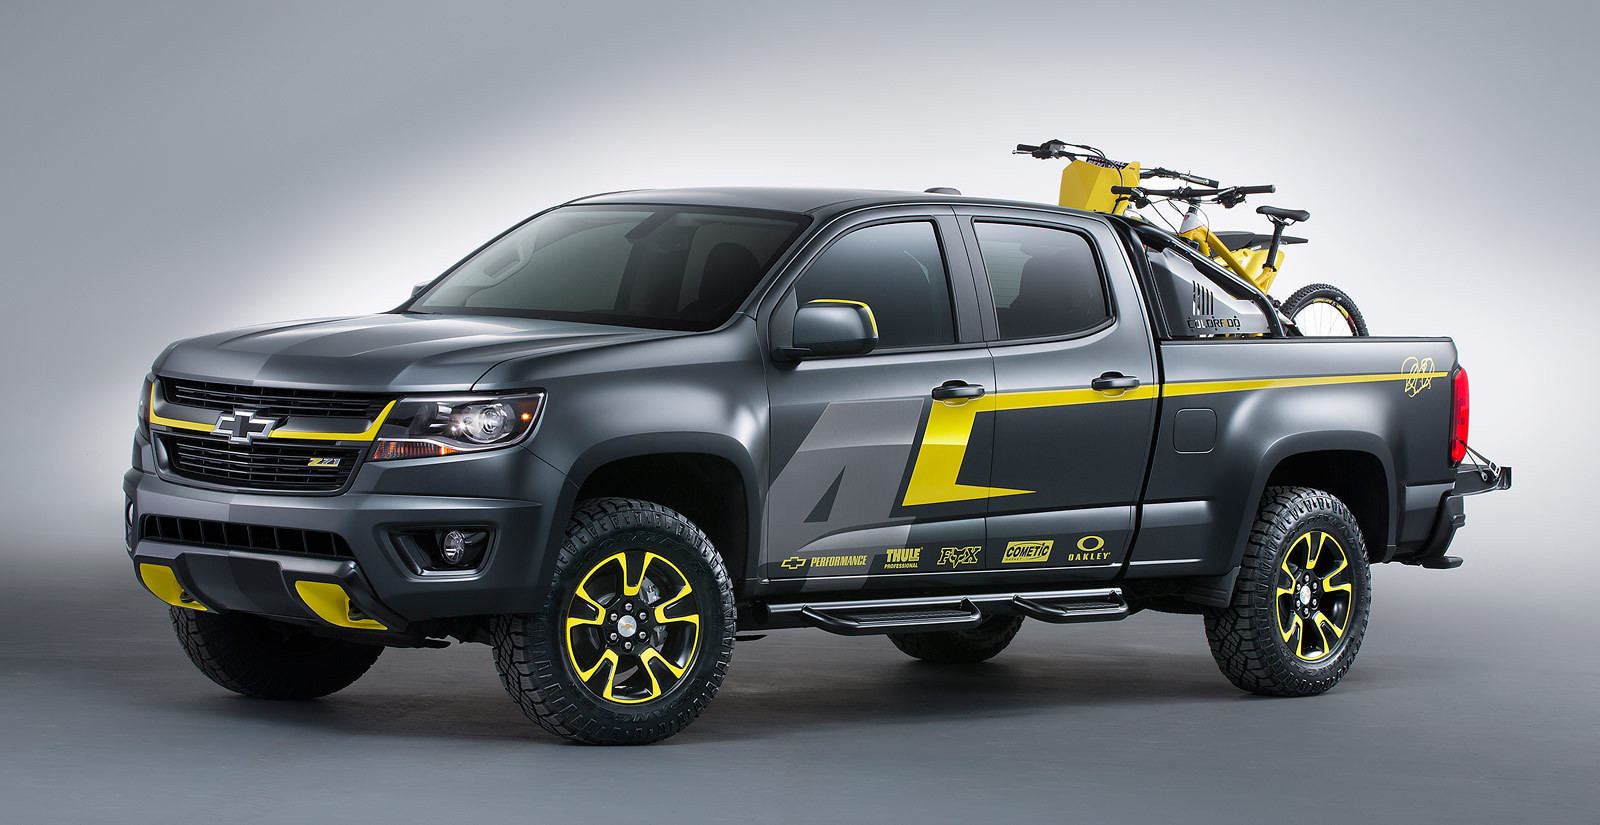 Truck chevy concept one truck : Ricky Carmichael Chevy Performance SEMA Concept Truck - Motocross ...